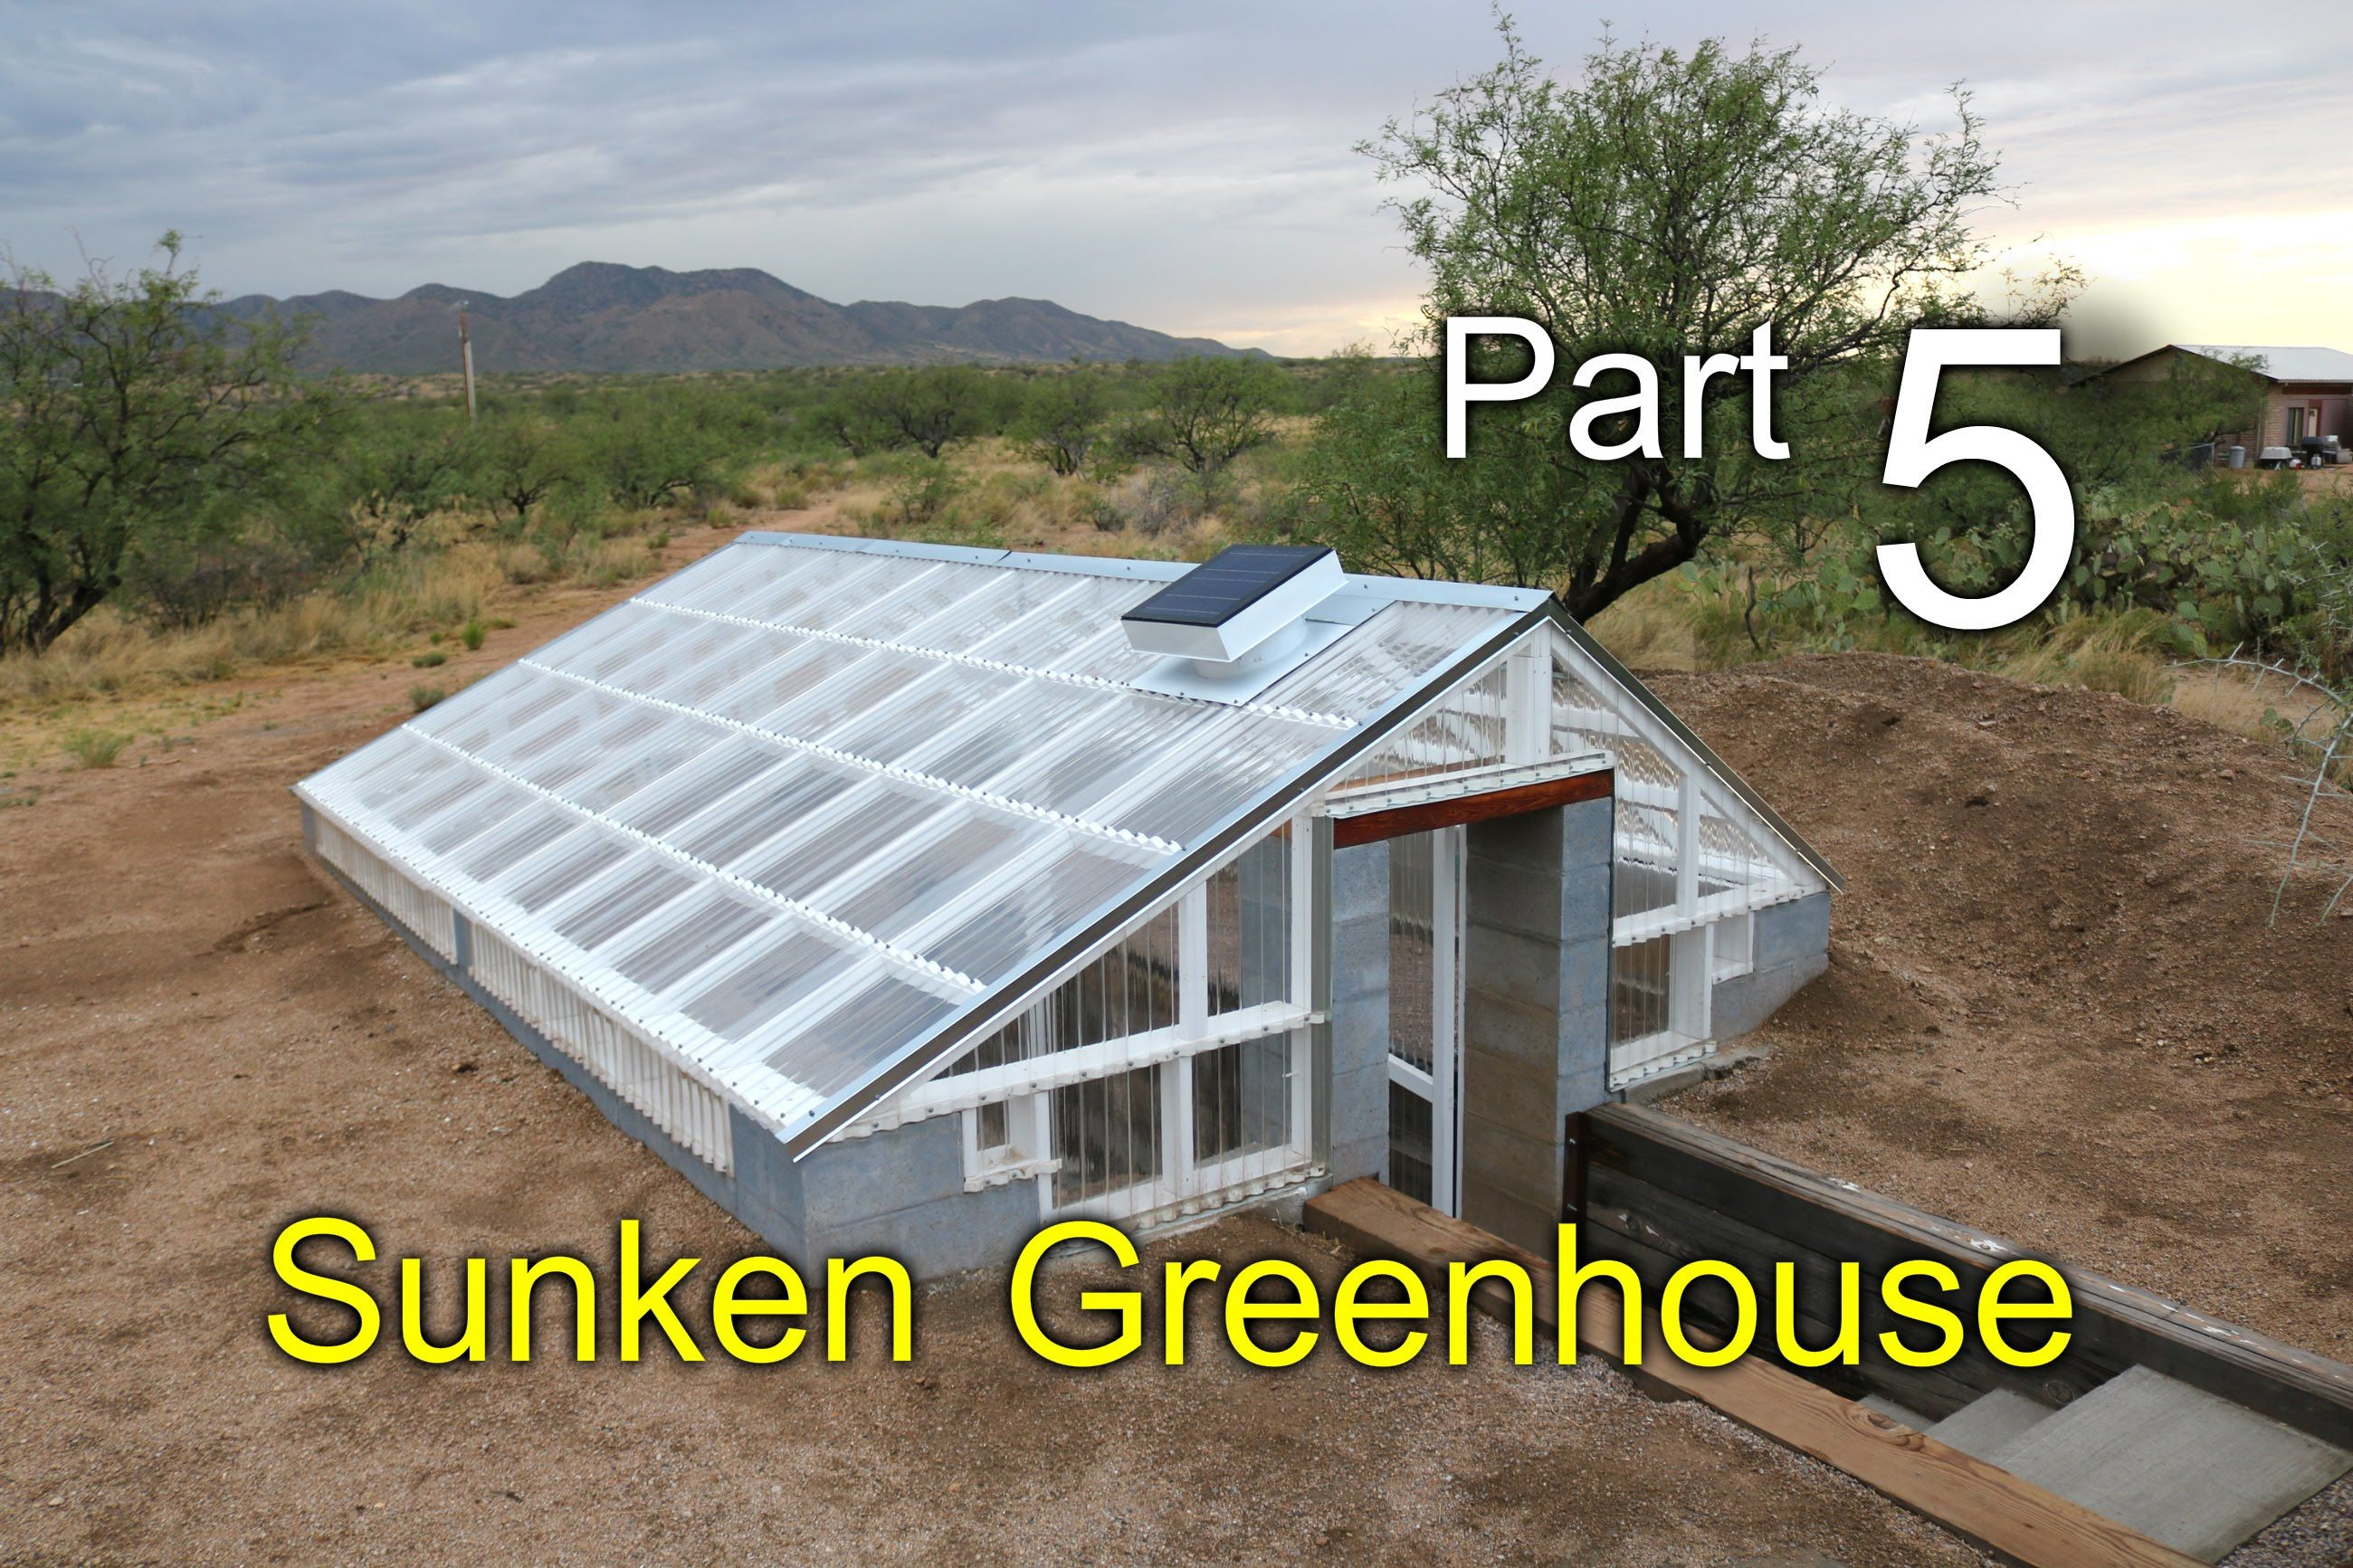 sunken greenhouse part 5 ventilation remington solar wind diversion gardeningdifferentways. Black Bedroom Furniture Sets. Home Design Ideas